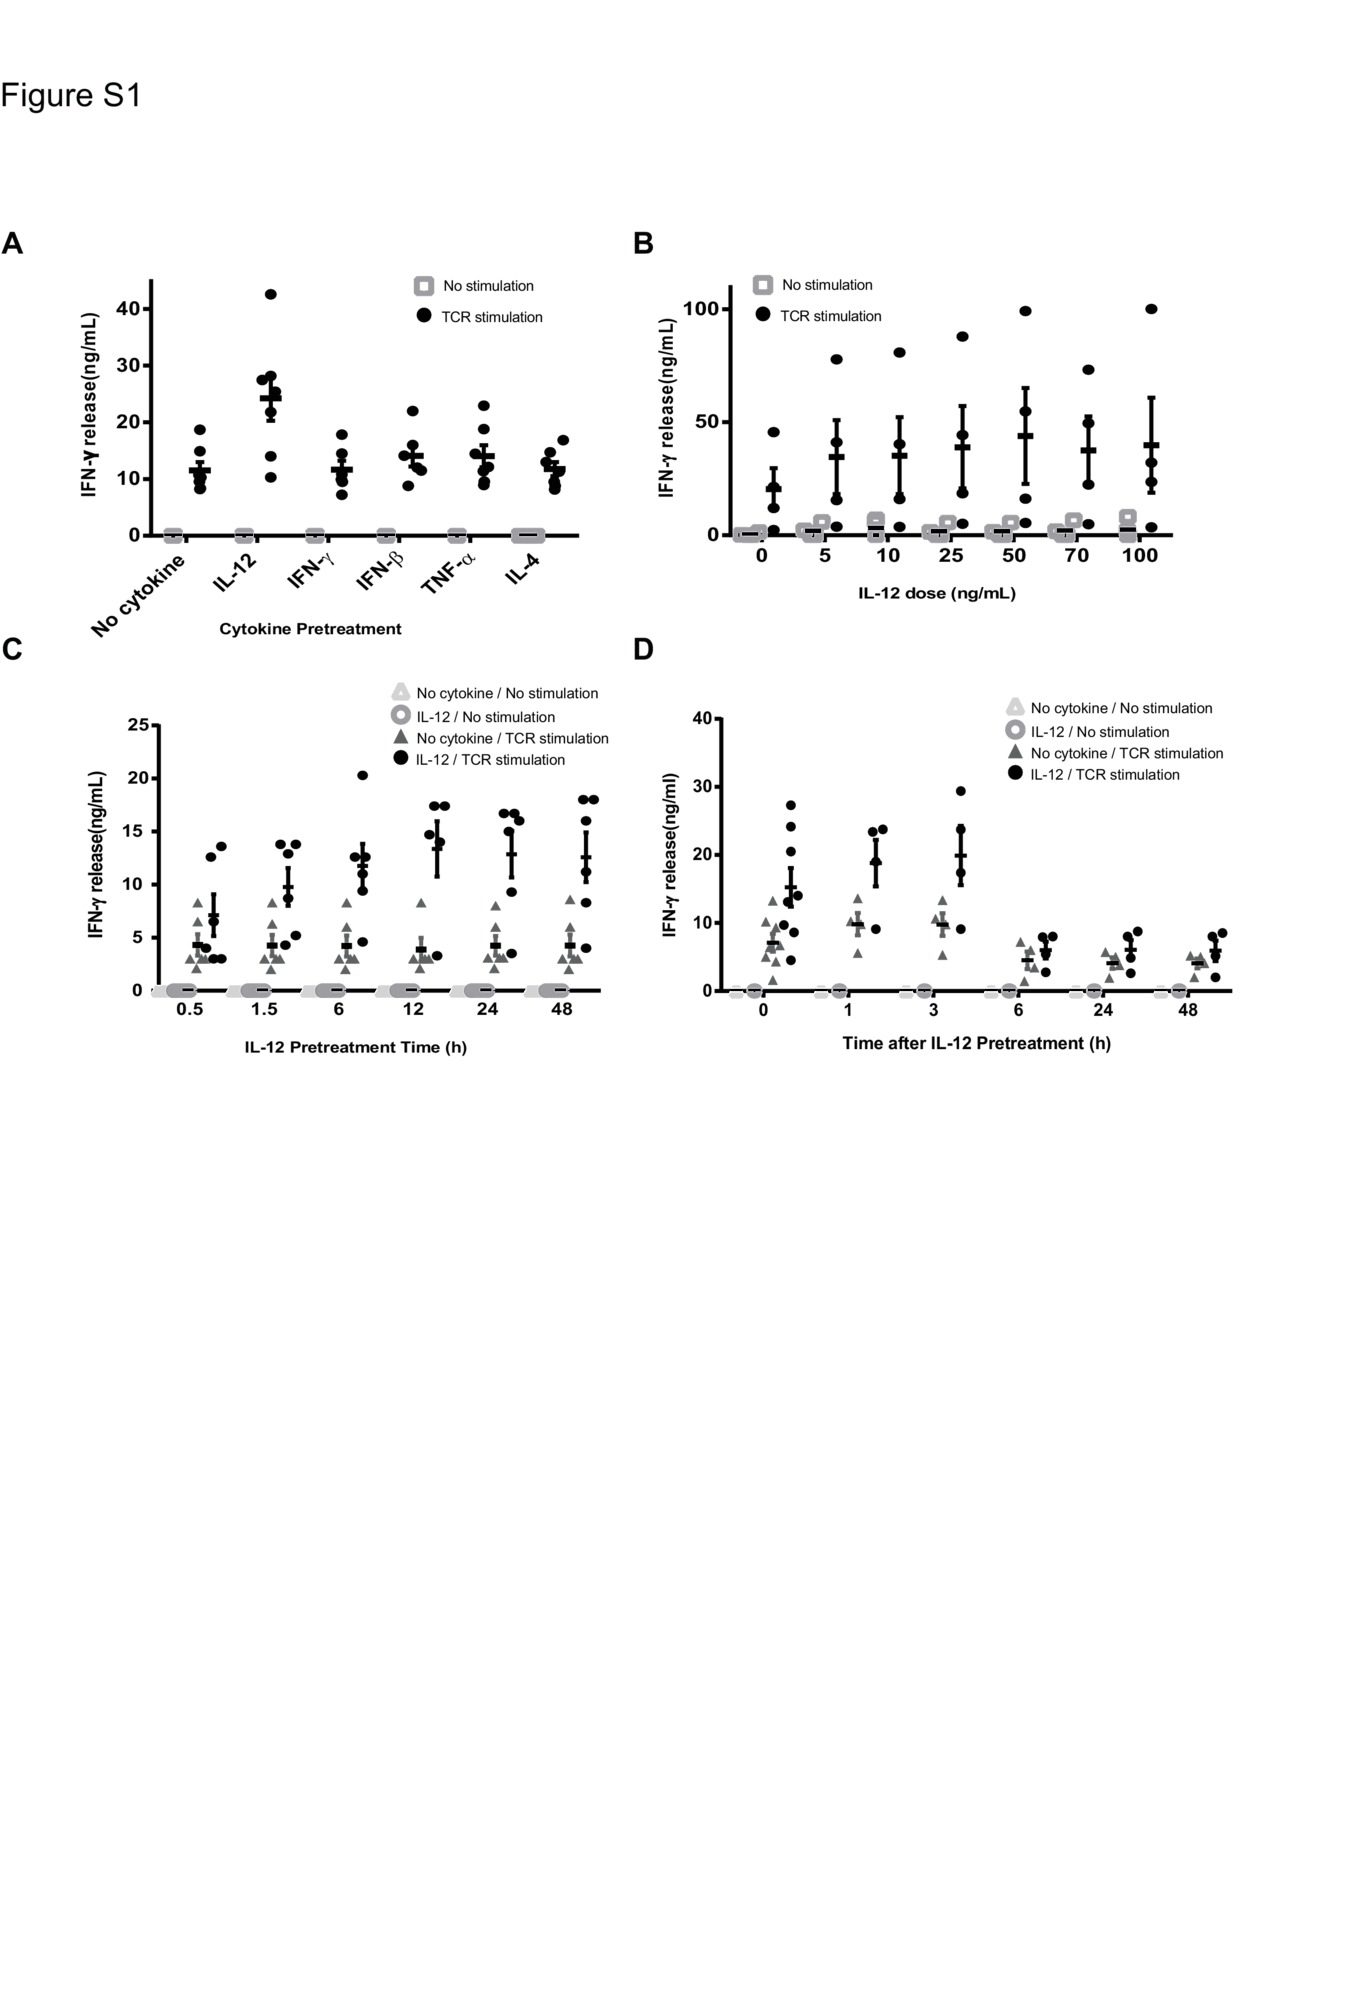 Exposure Of Human CD4 T Cells To IL 12 Results In Enhanced TCR